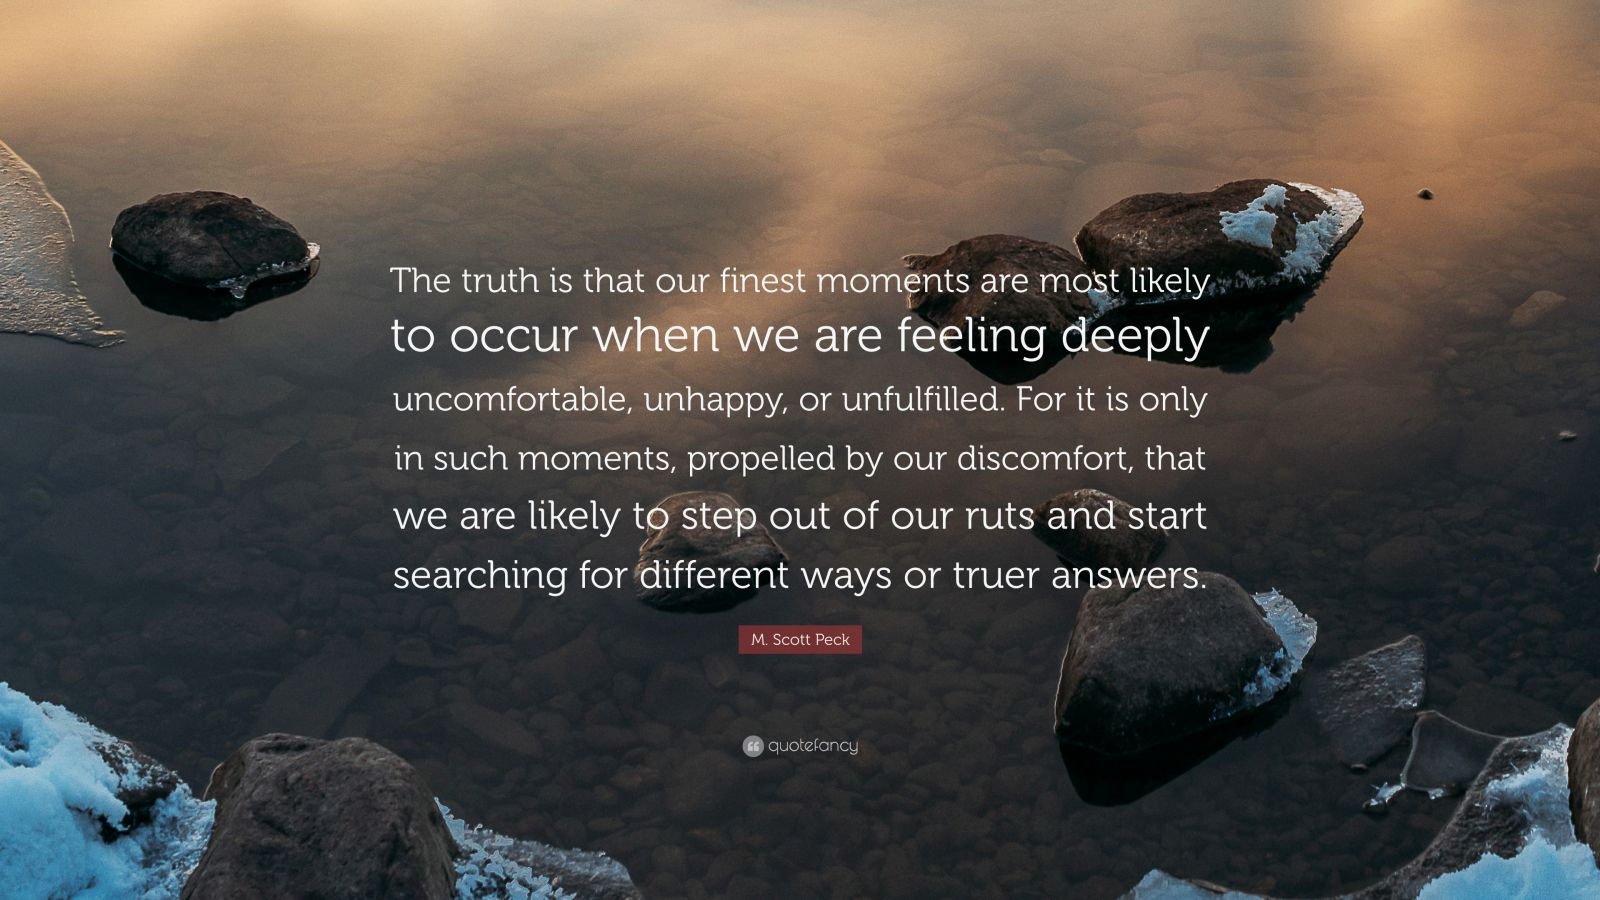 """M. Scott Peck Quote: """"The truth is that our finest moments are most likely to occur when we are feeling deeply uncomfortable, unhappy, or unfulfilled. For it is only in such moments, propelled by our discomfort, that we are likely to step out of our ruts and start searching for different ways or truer answers."""""""